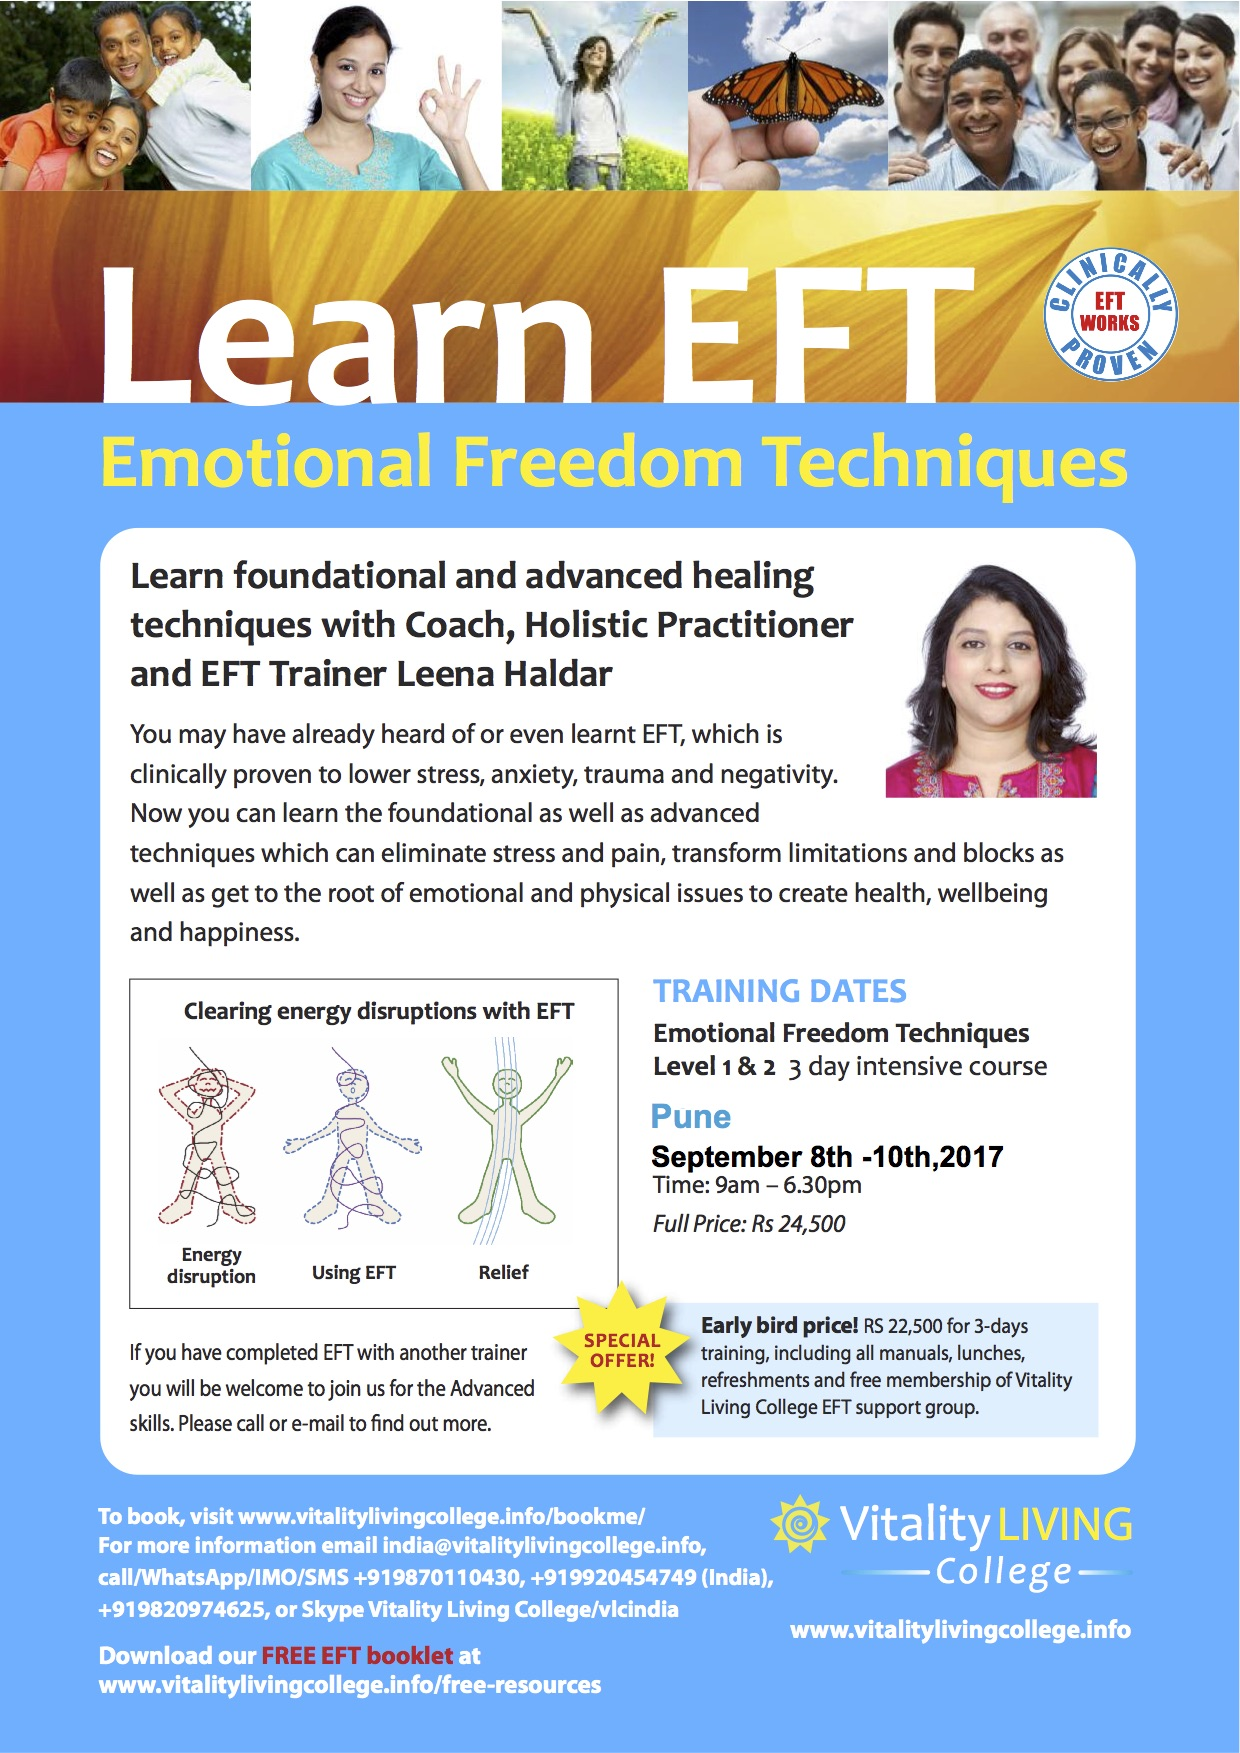 Emotional Freedom Techniques (EFT) Pune September 2017